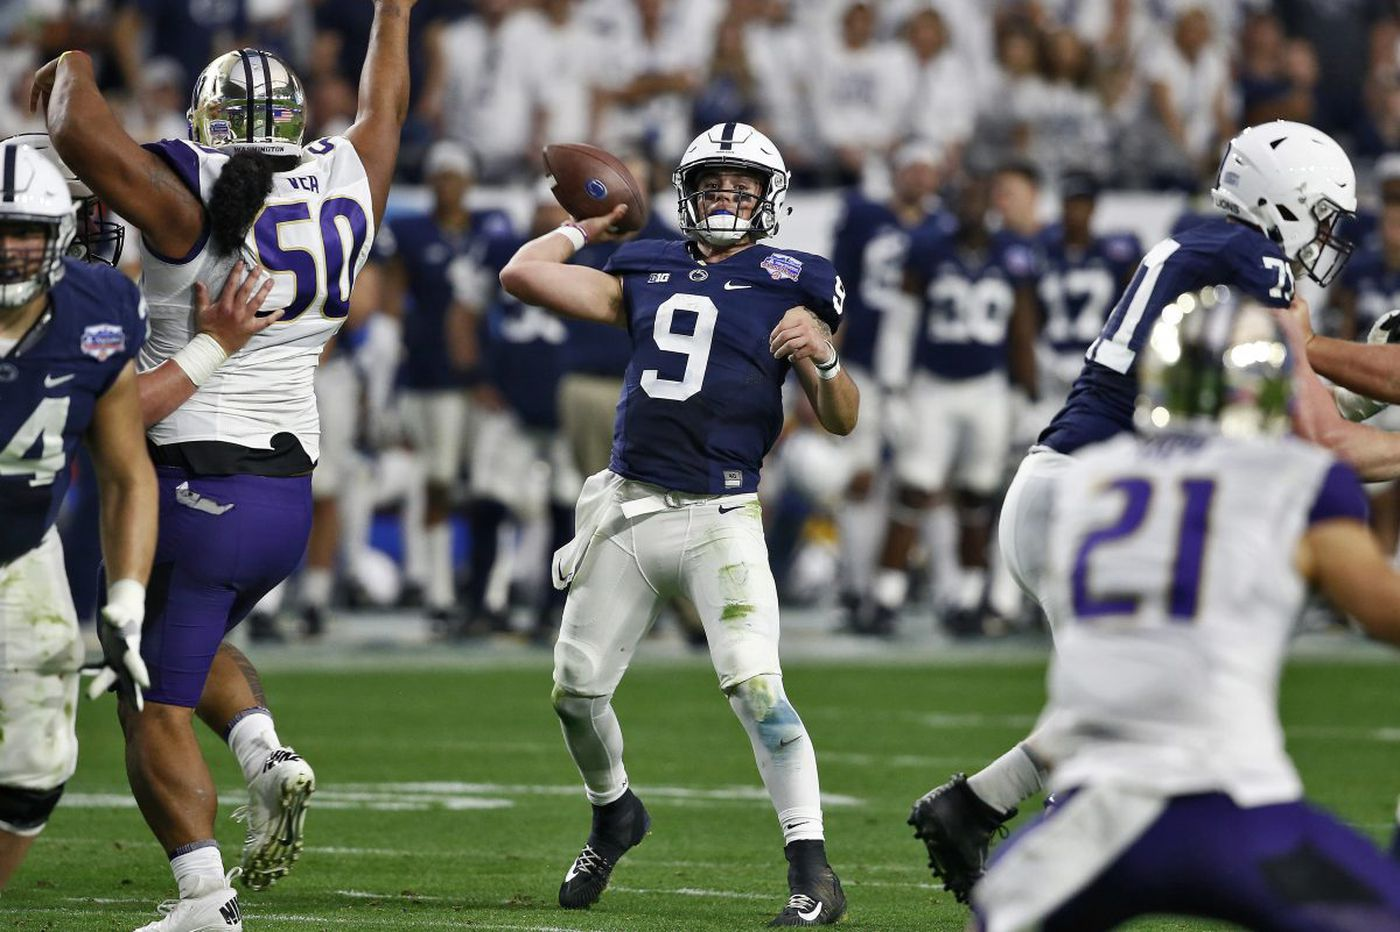 Penn State's Trace McSorley sealed Fiesta Bowl with strong decisions, especially on third down